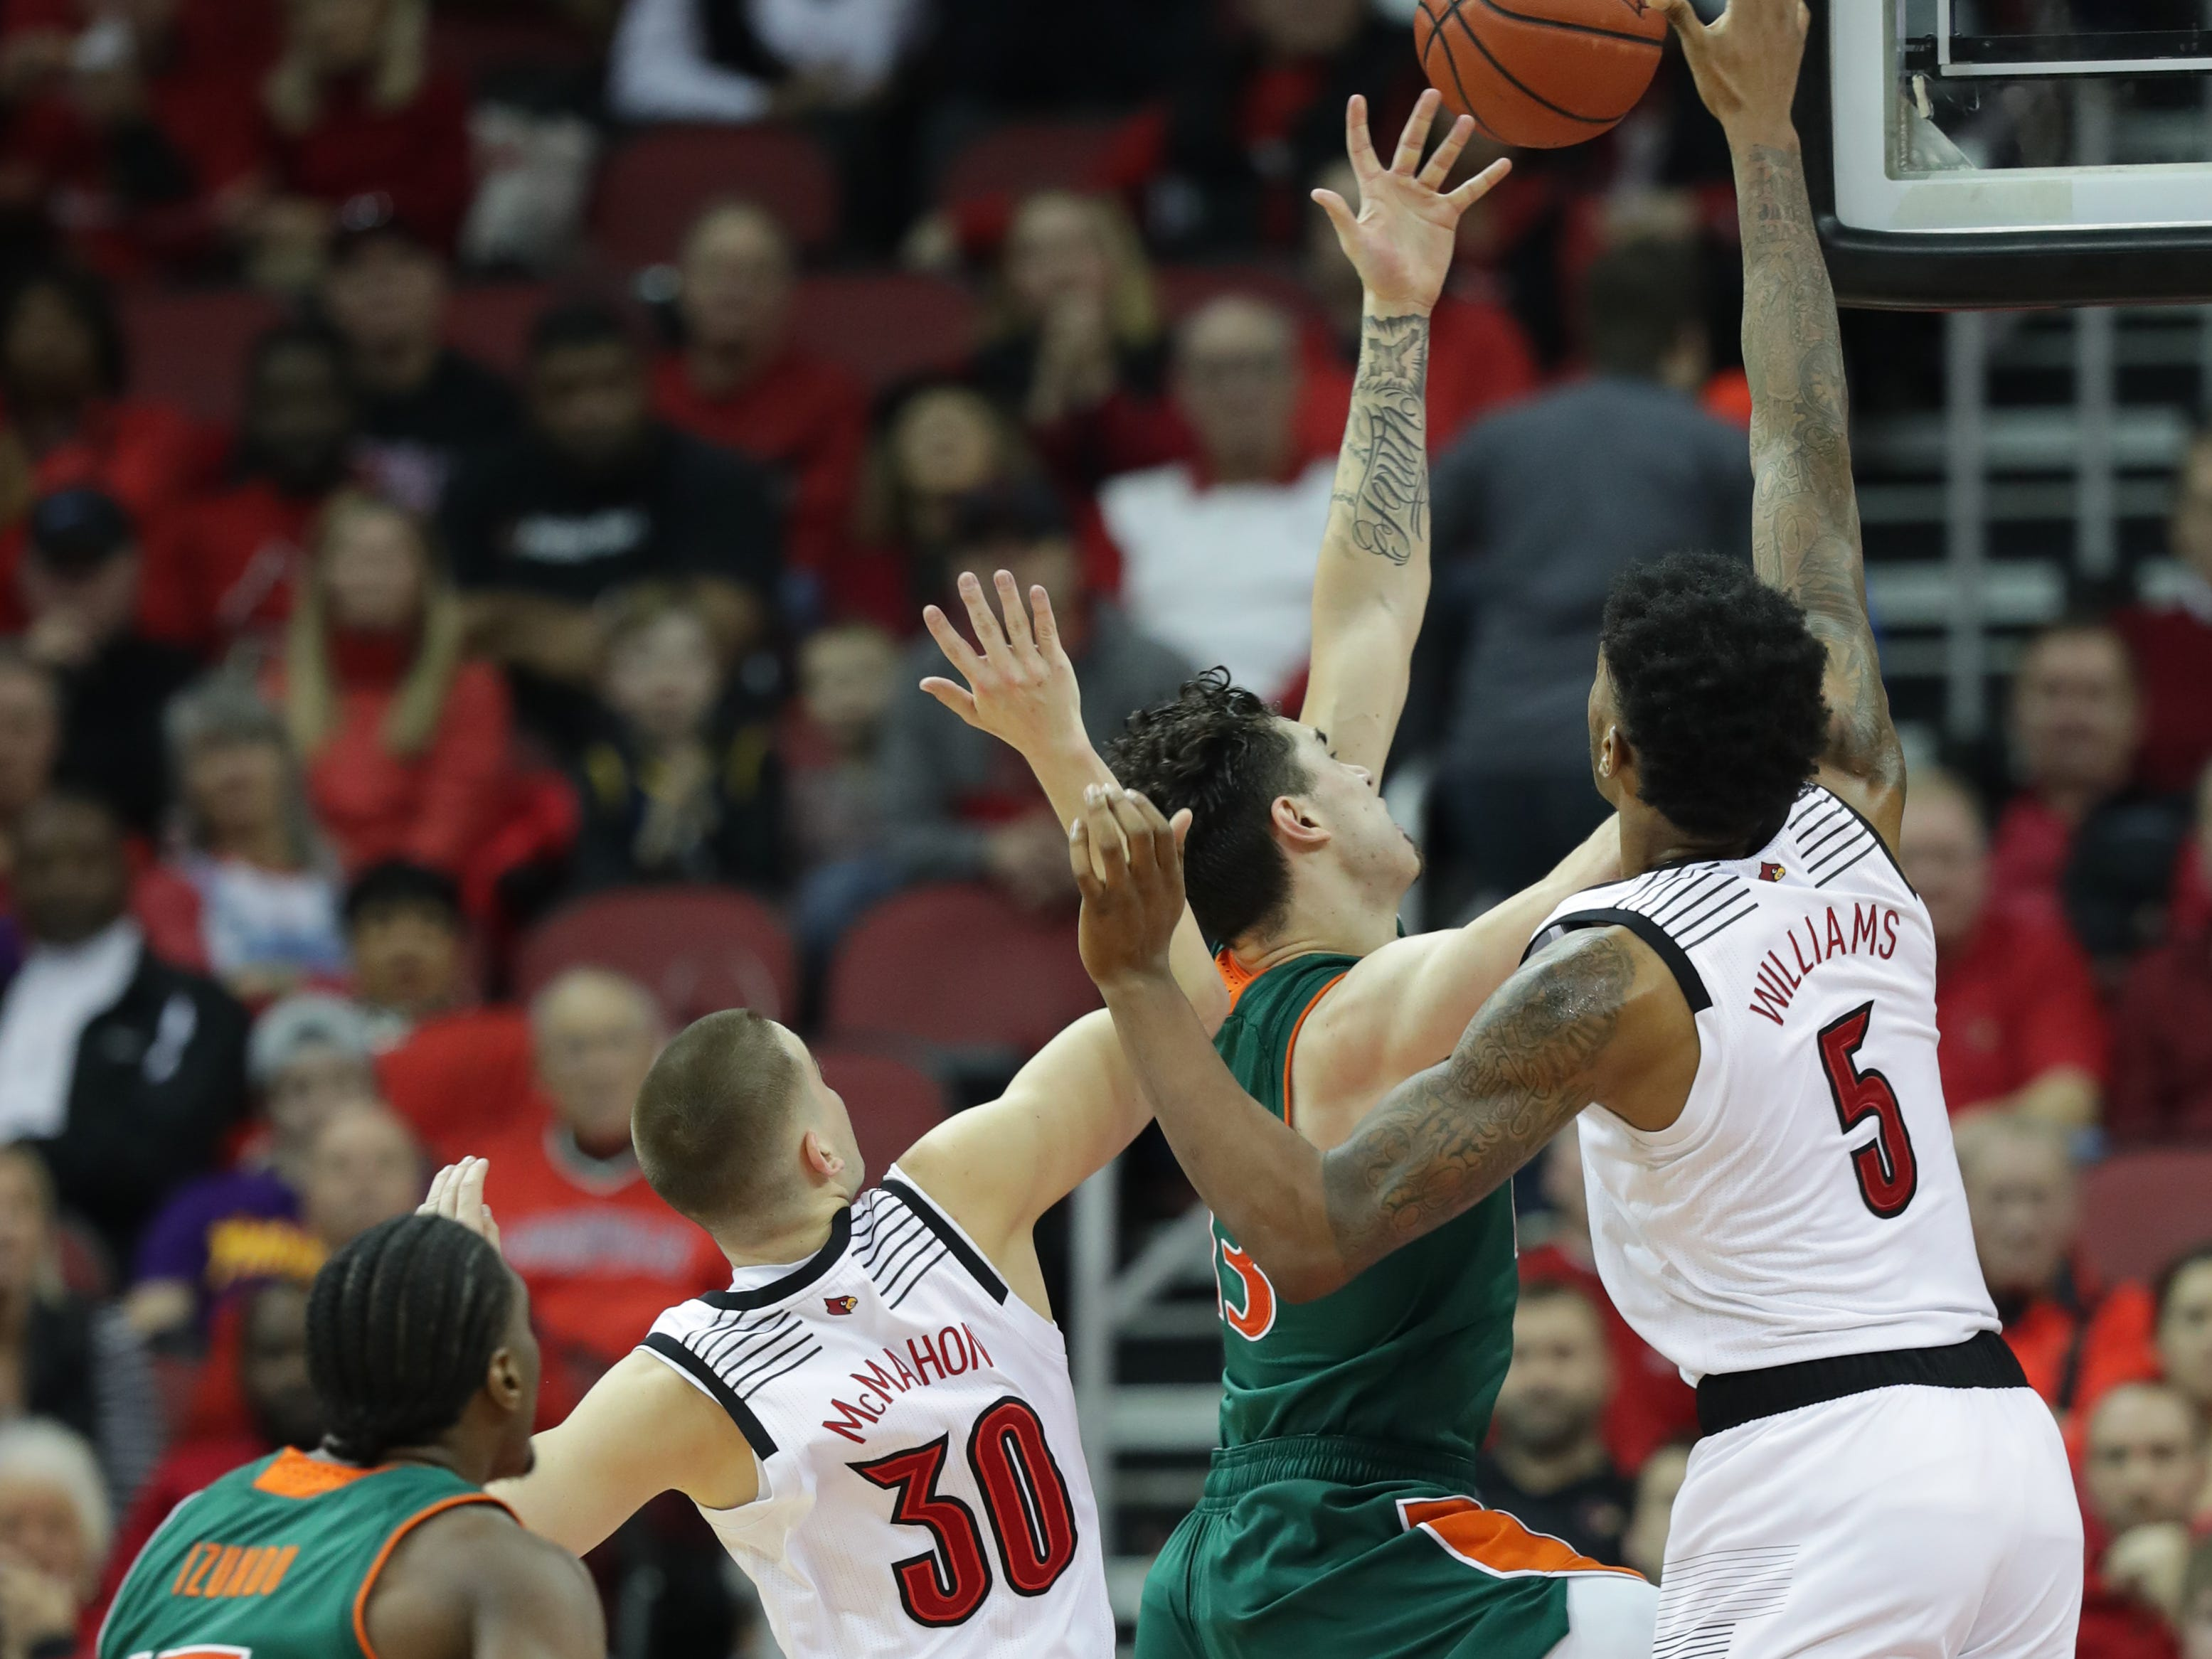 Miami's Anthony Mack drives to the basket against Louisville's Ryan McMahon and Malik Williams. Jan. 6, 2019.